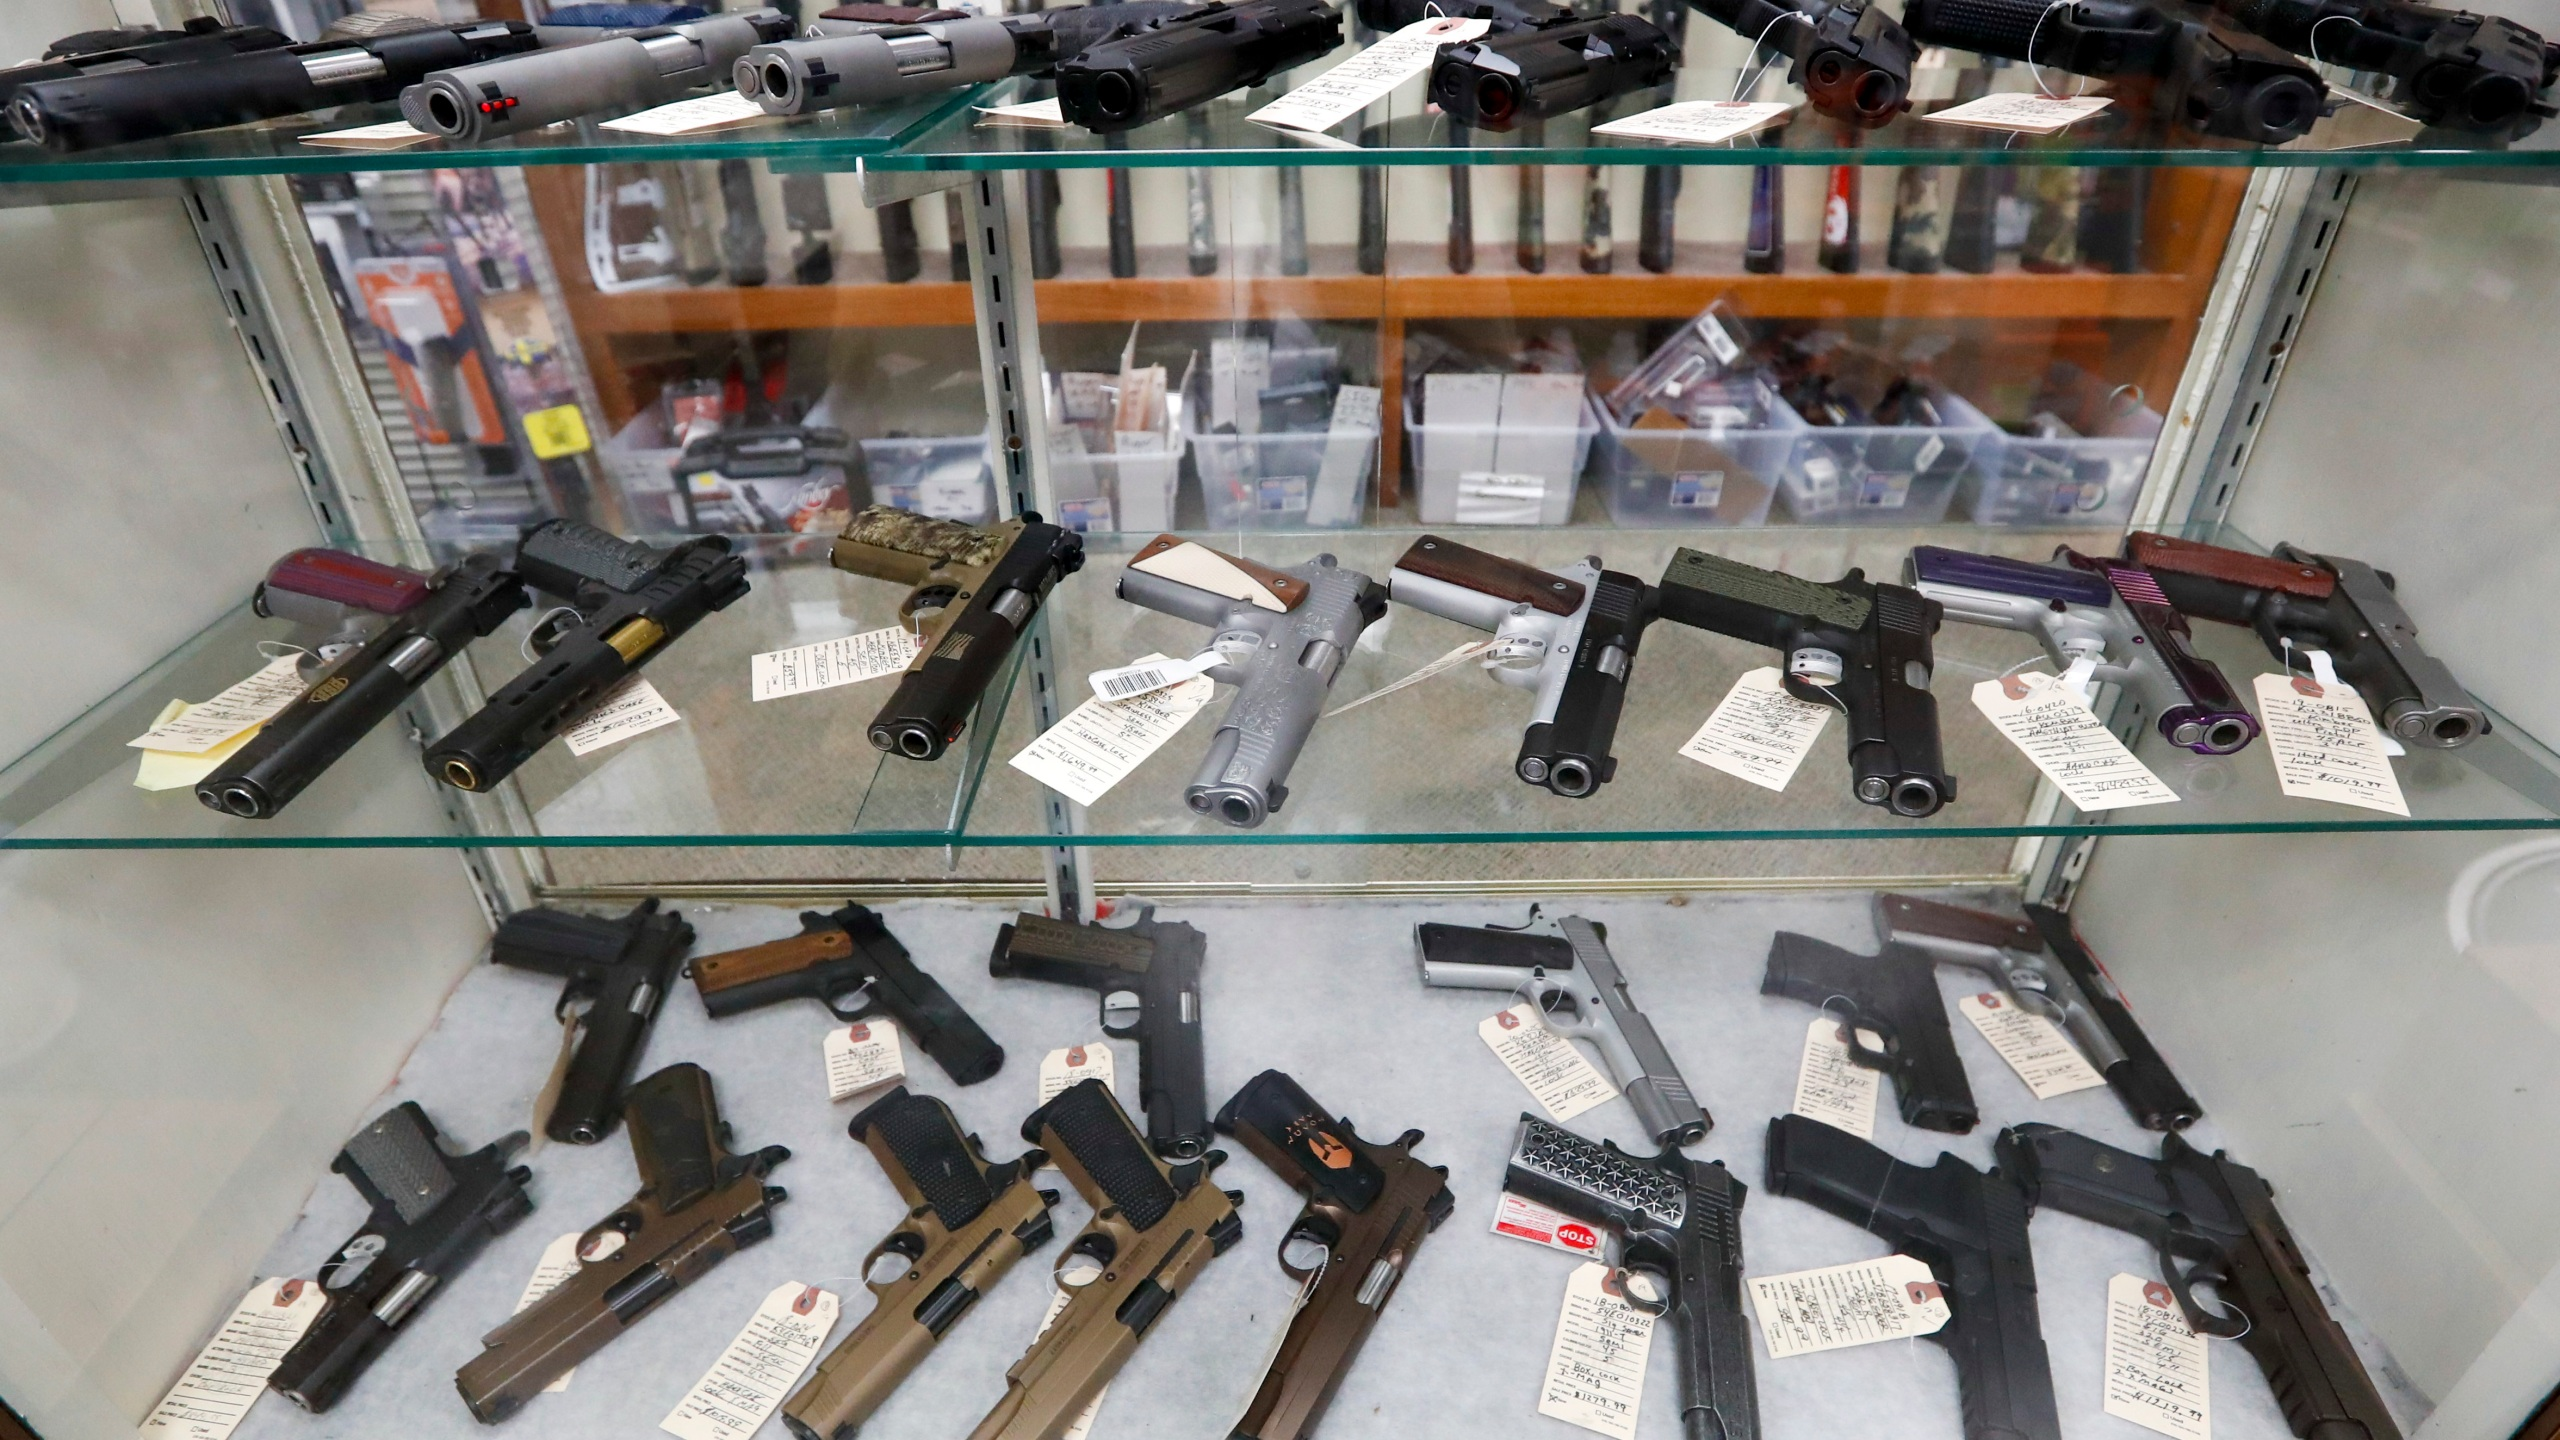 In this March 25, 2020, file photo semi-automatic handguns are displayed at shop in New Castle, Pa. (AP Photo/Keith Srakocic, File)